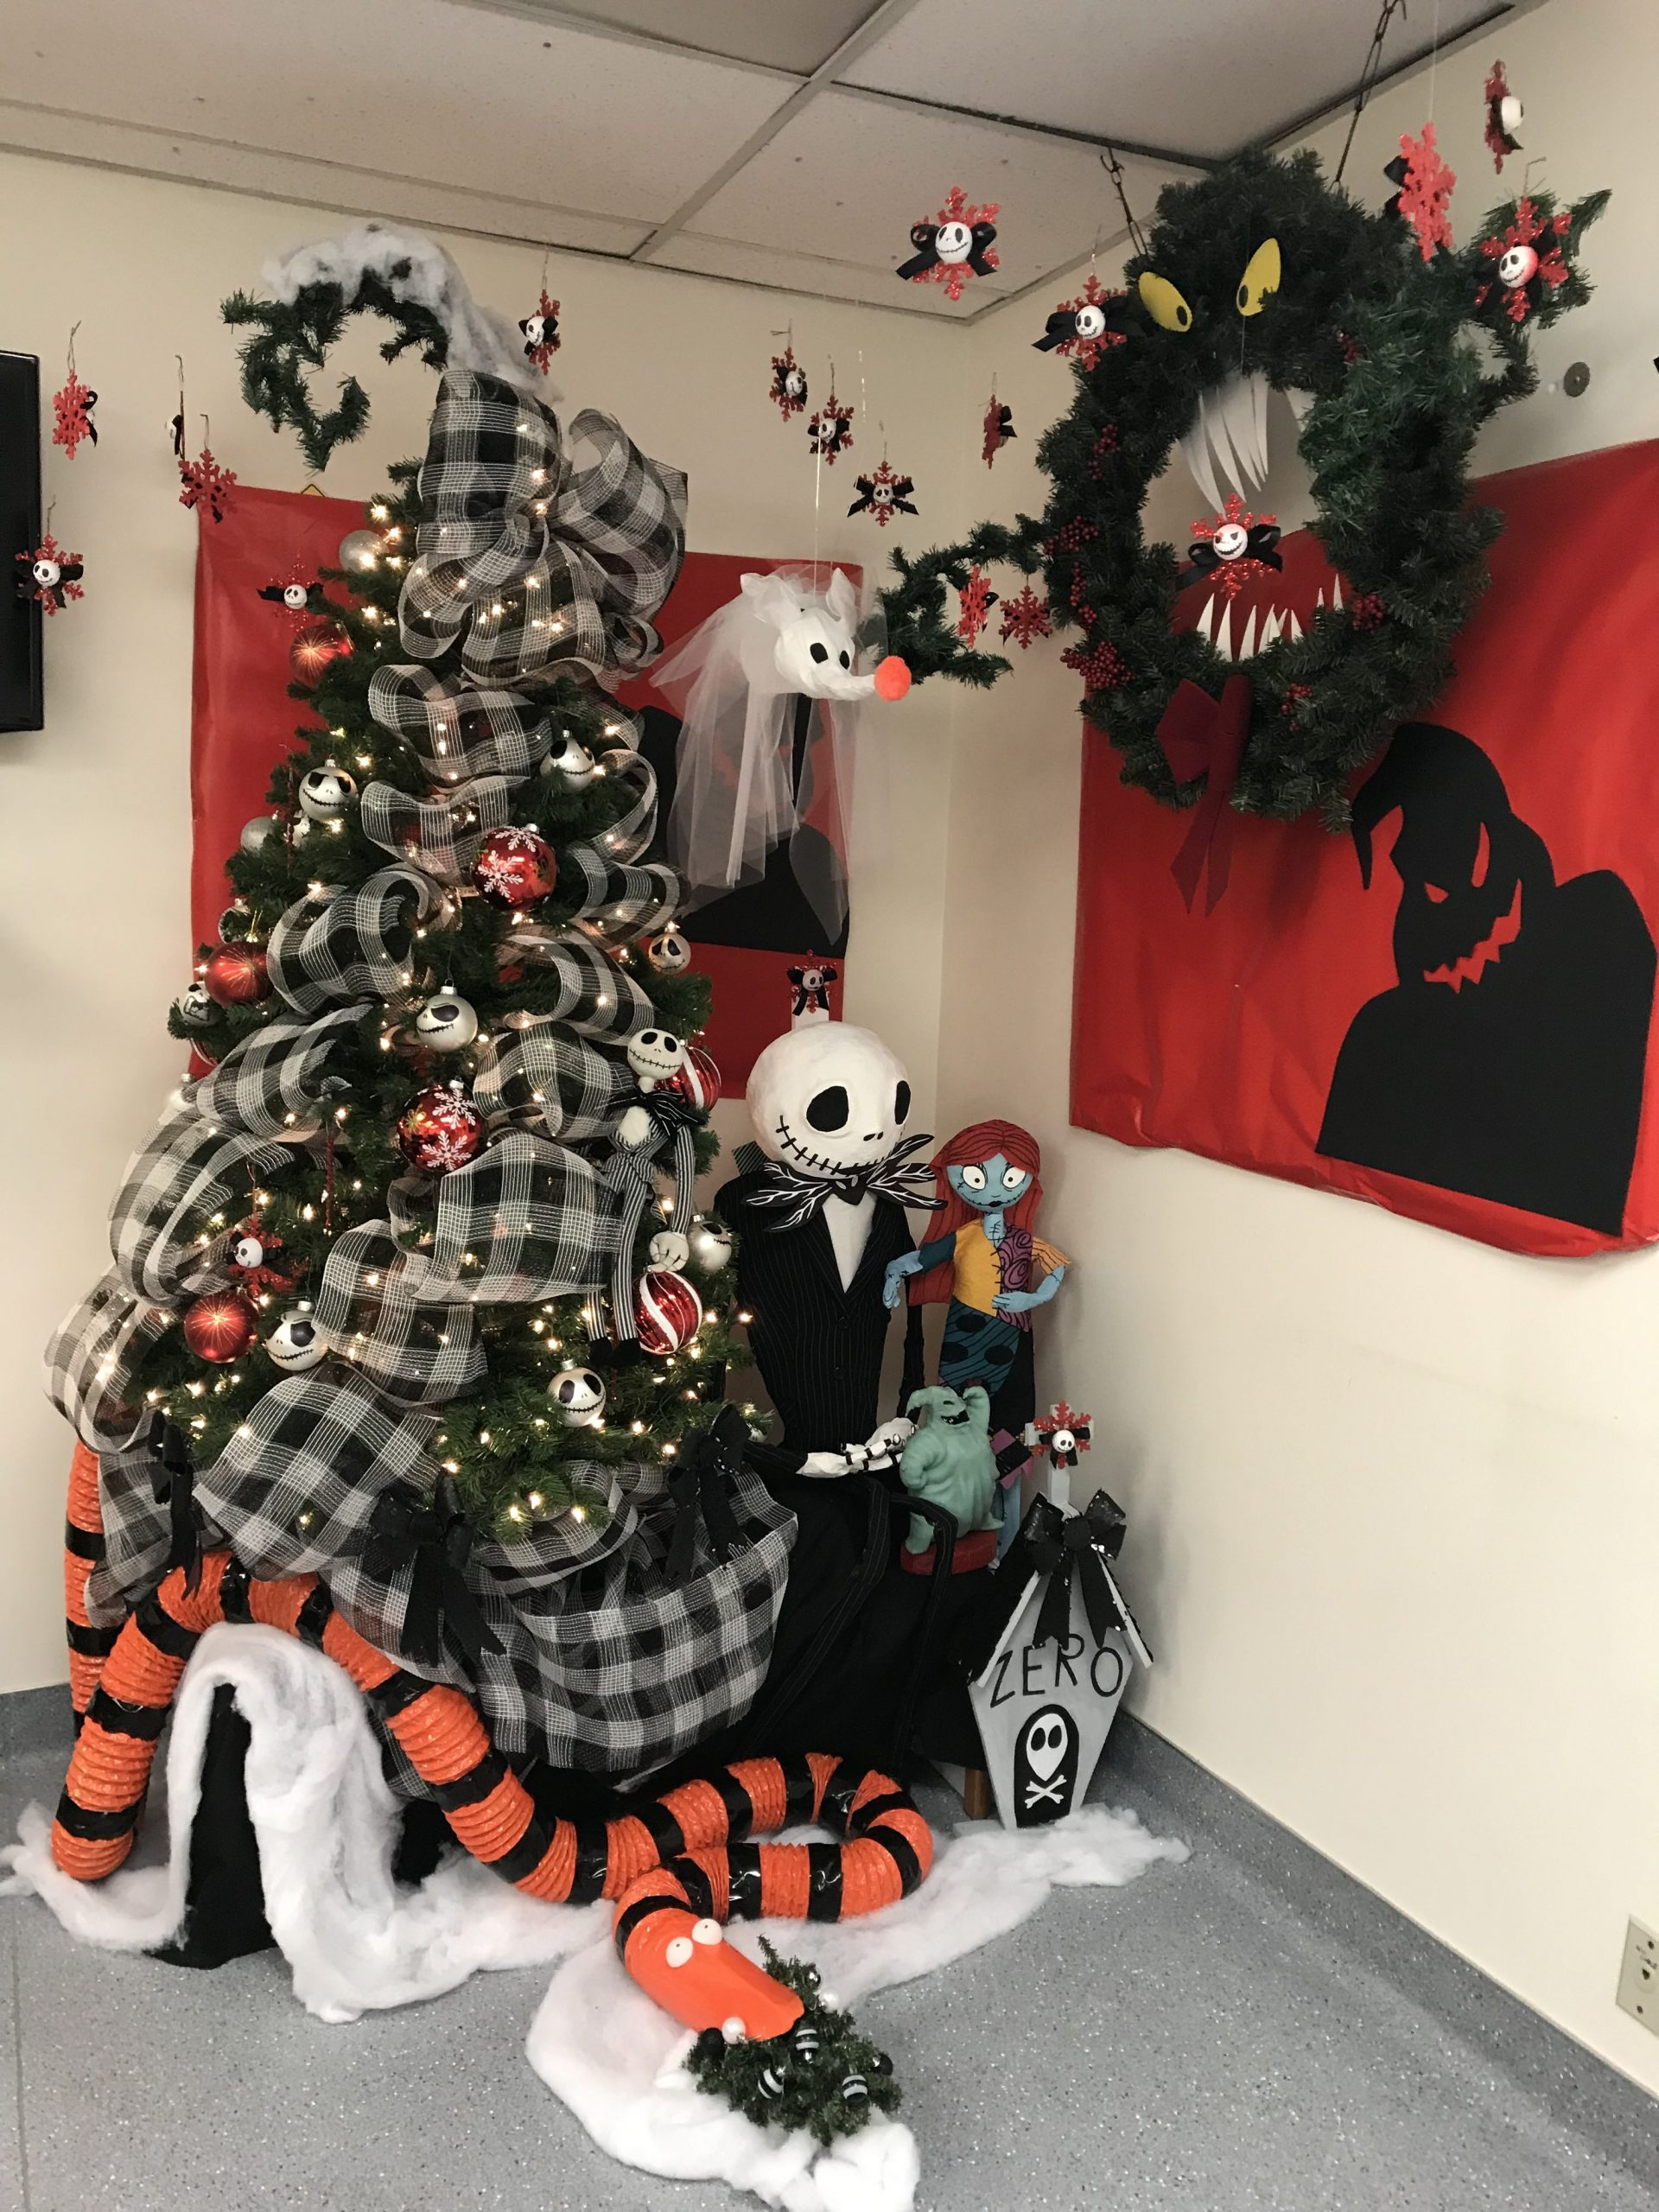 The Nightmare Before Christmas Decorations